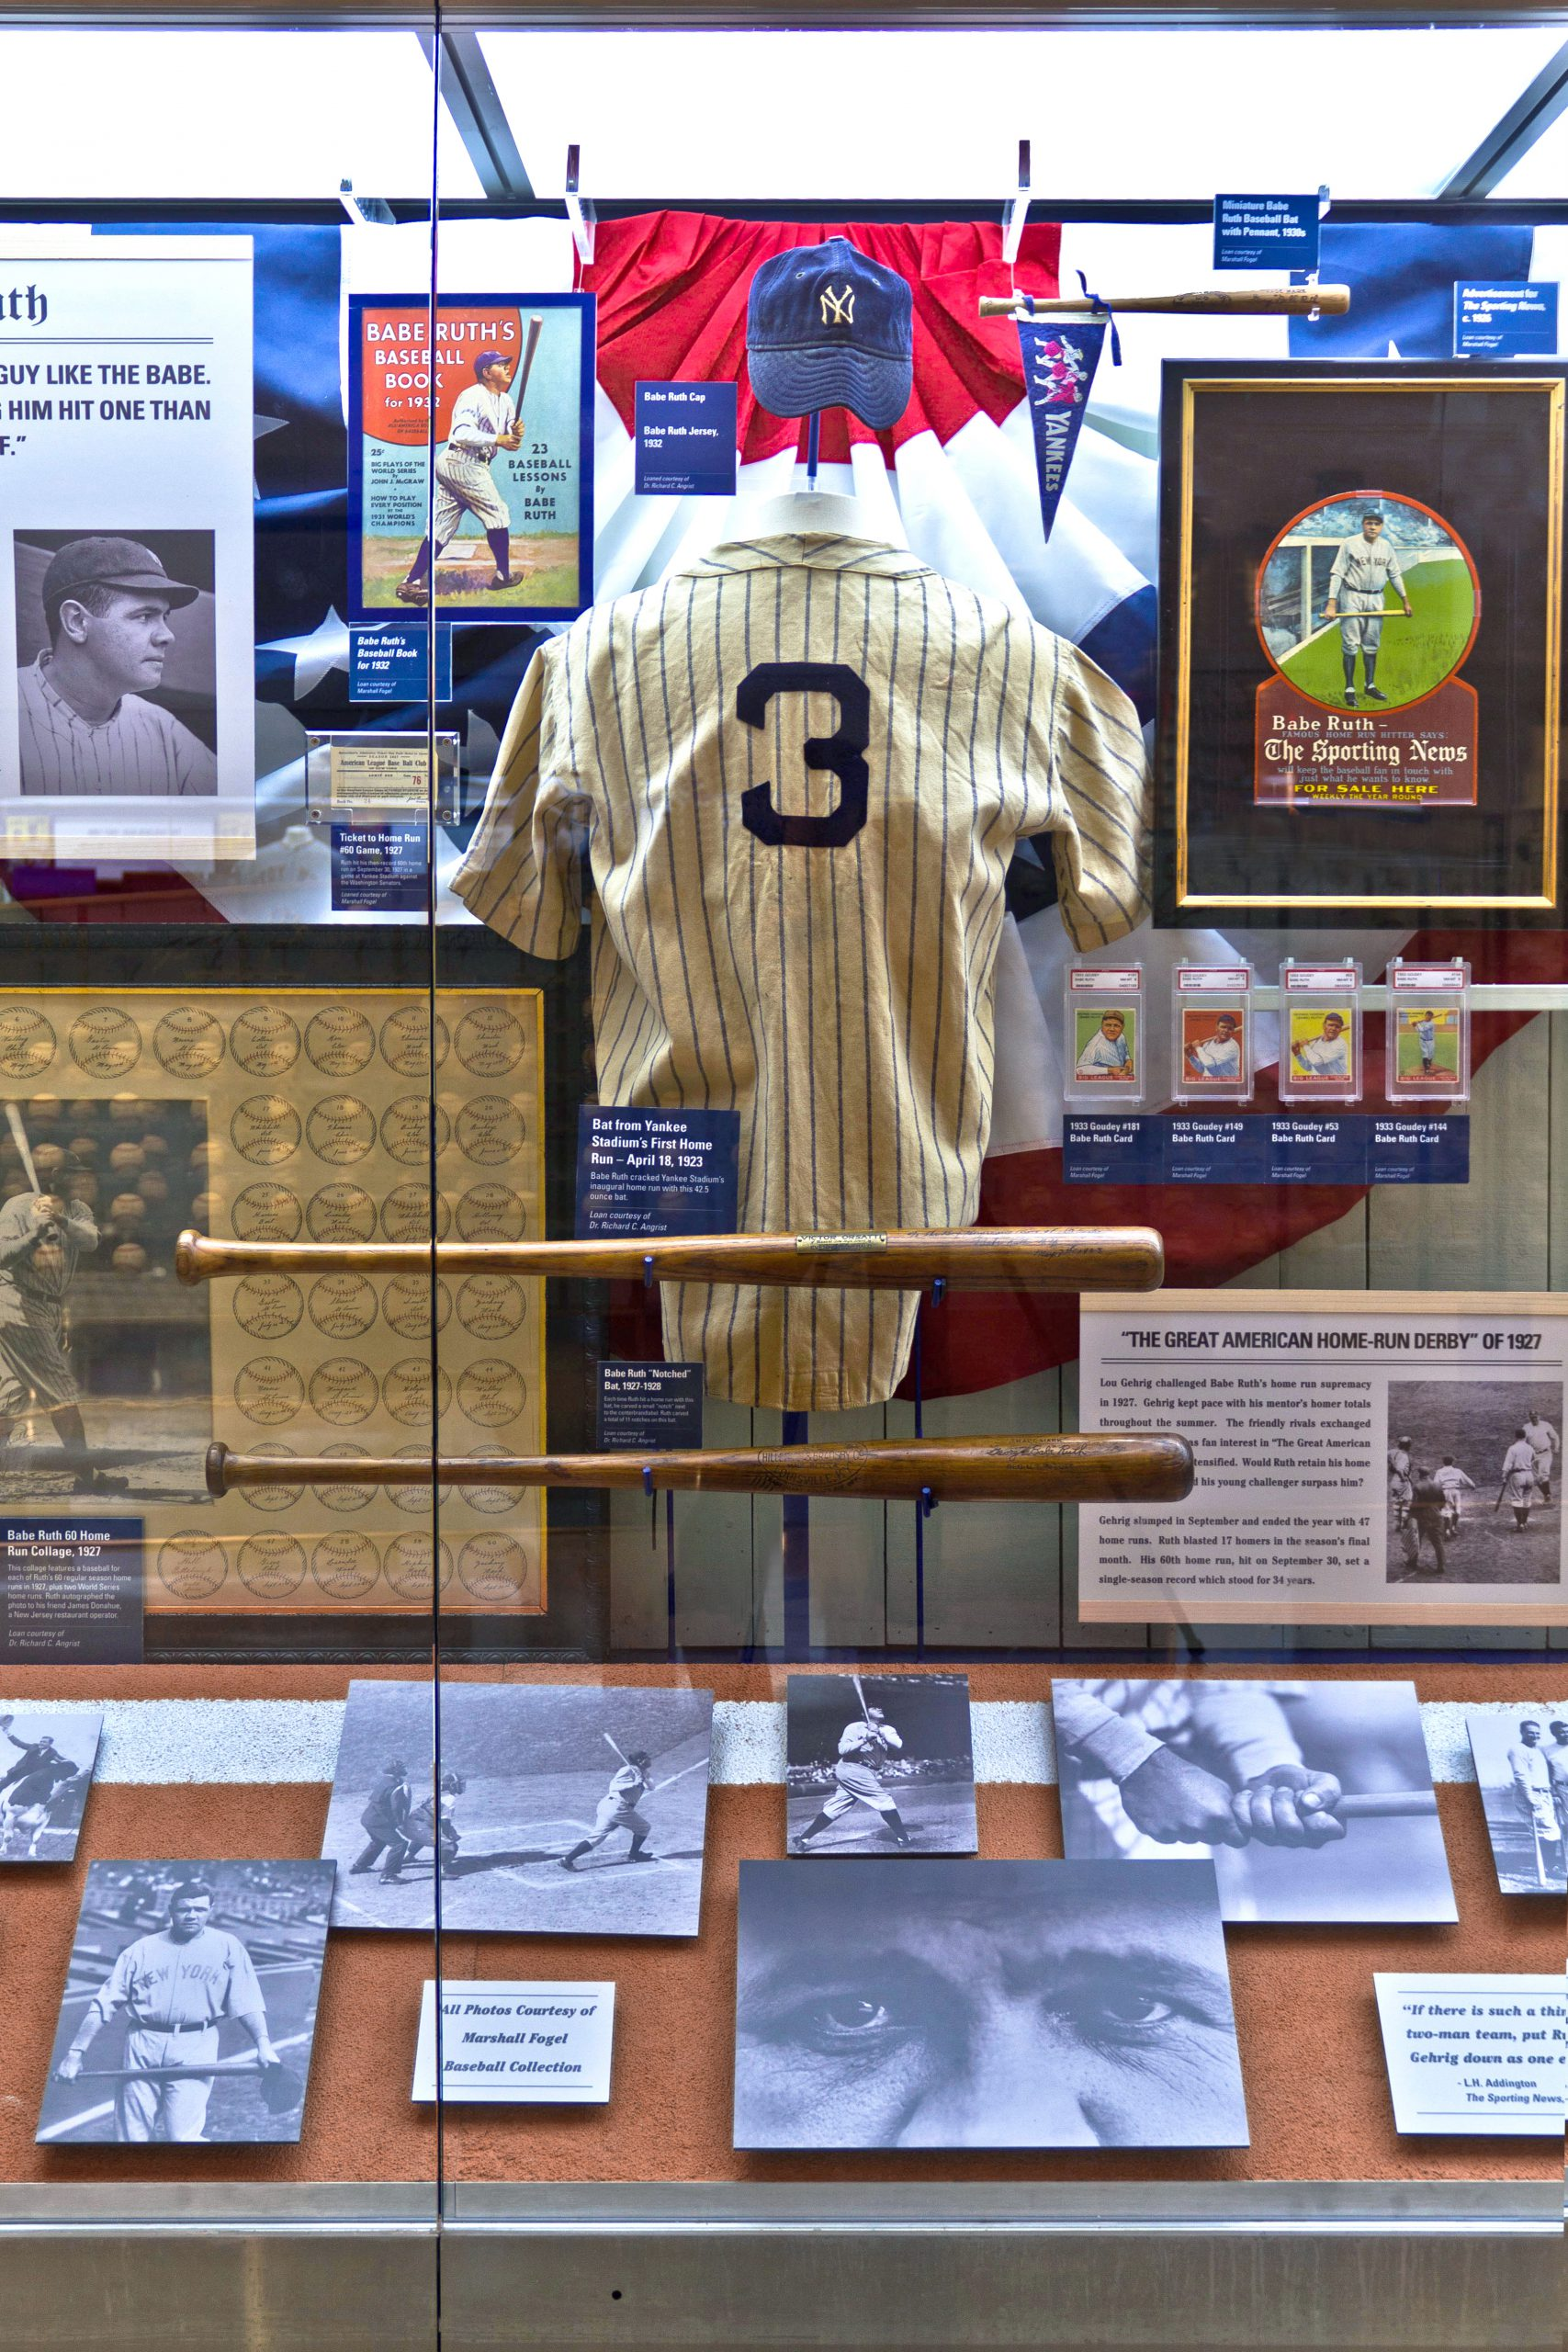 Project image 5 for Museum, New York Yankees